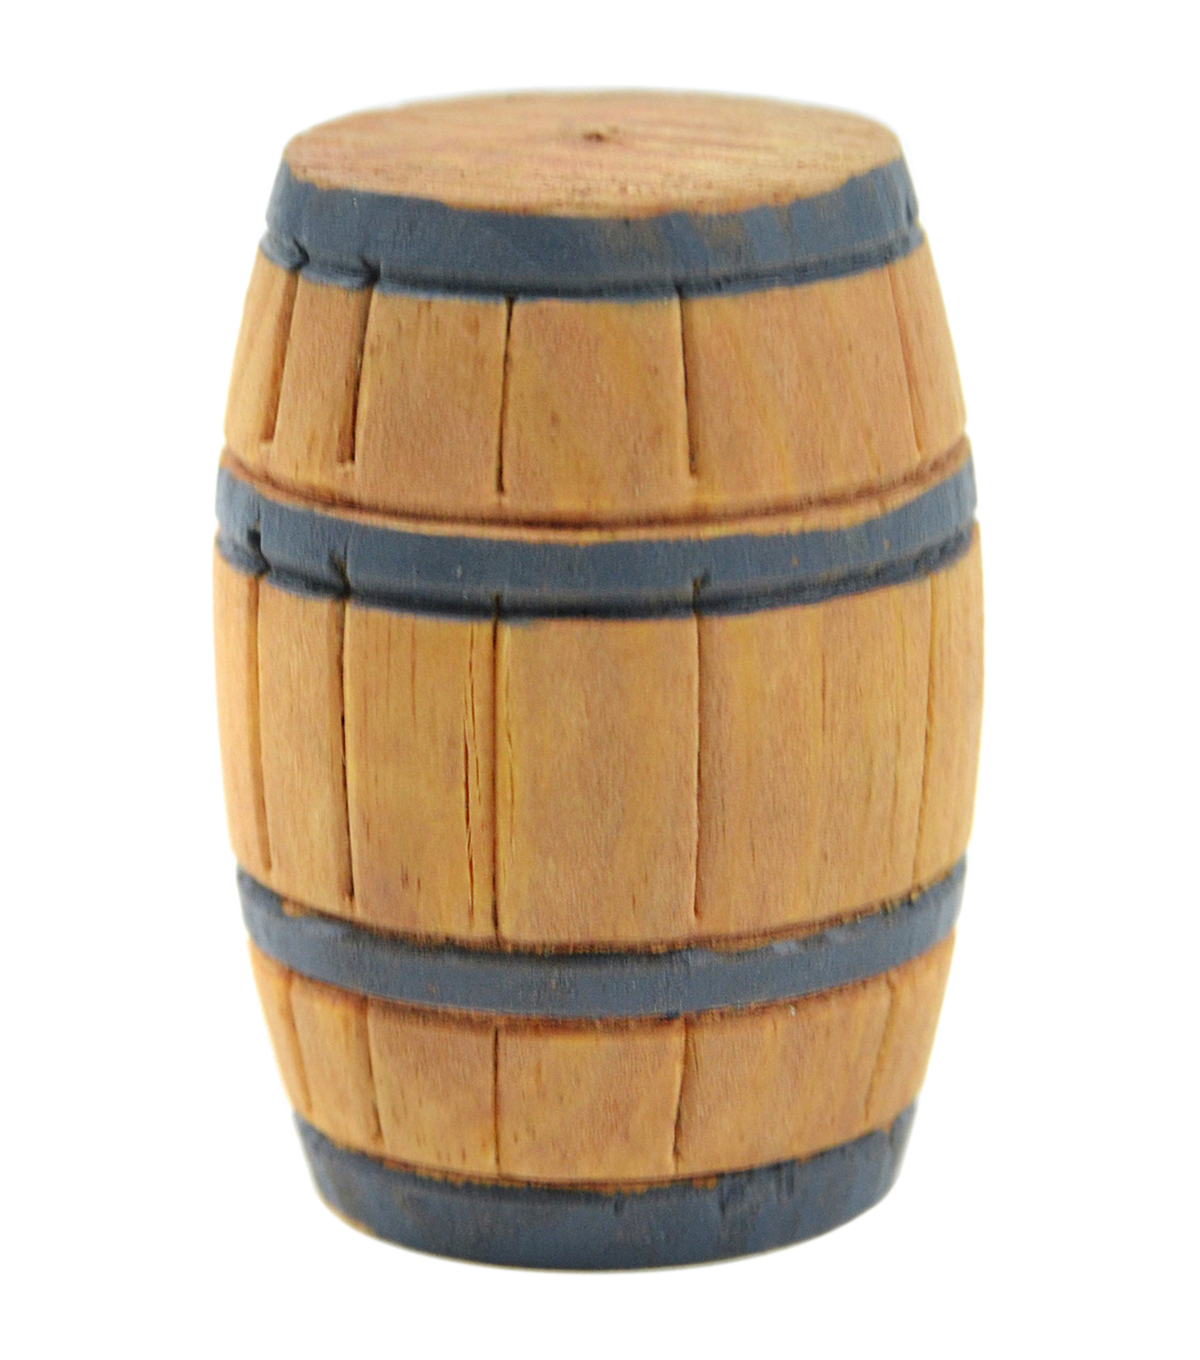 Midwest Design Mini Garden Wood Barrel Miniature